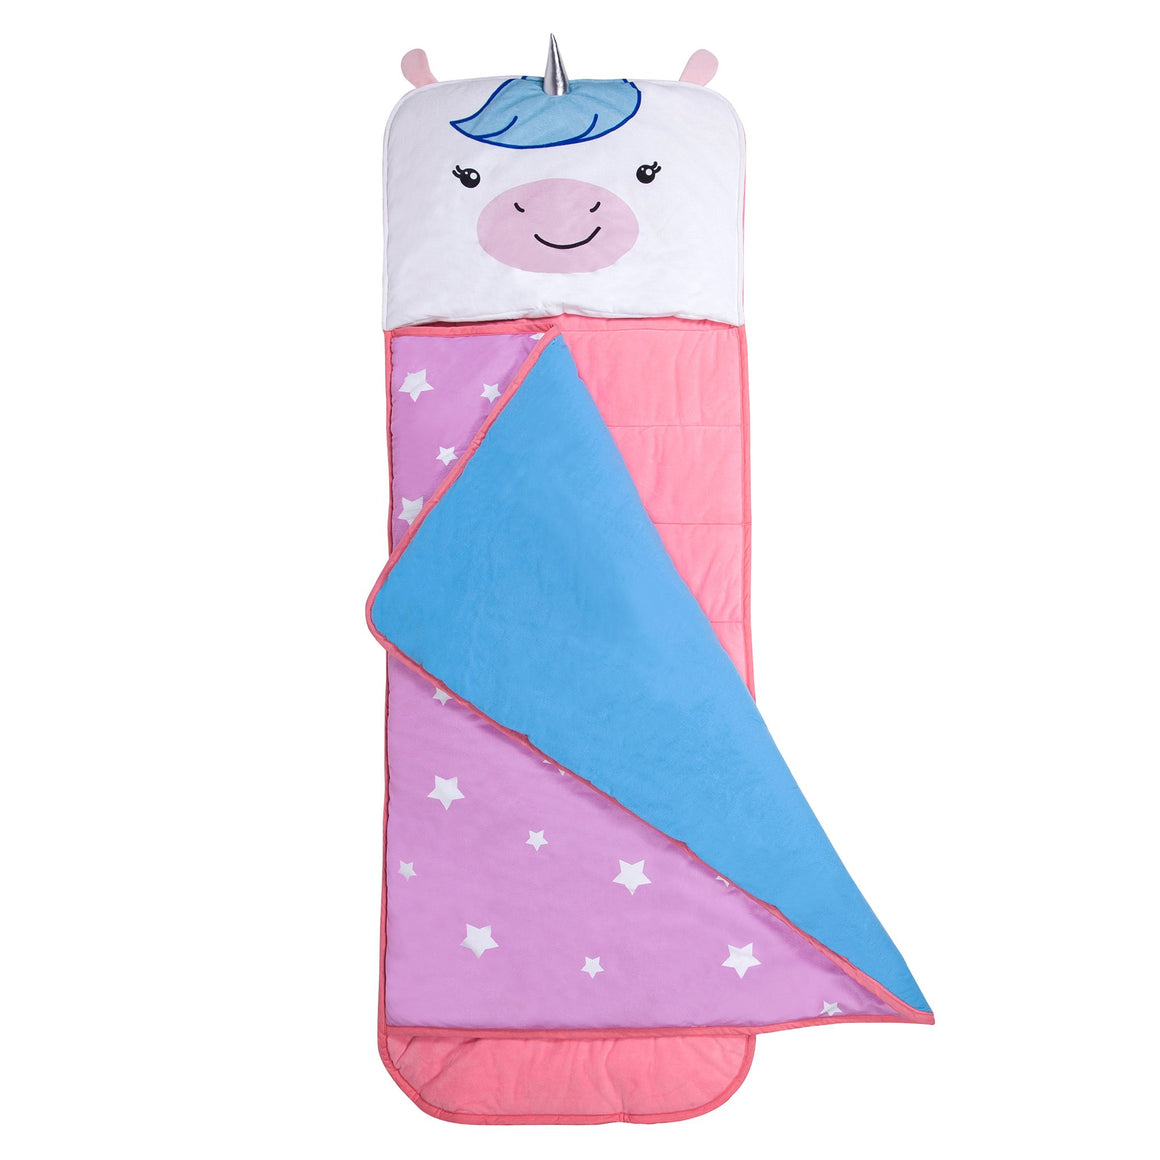 Wildkin Olive Kids | Wild Bunch Unicorn Plush Nap Mat